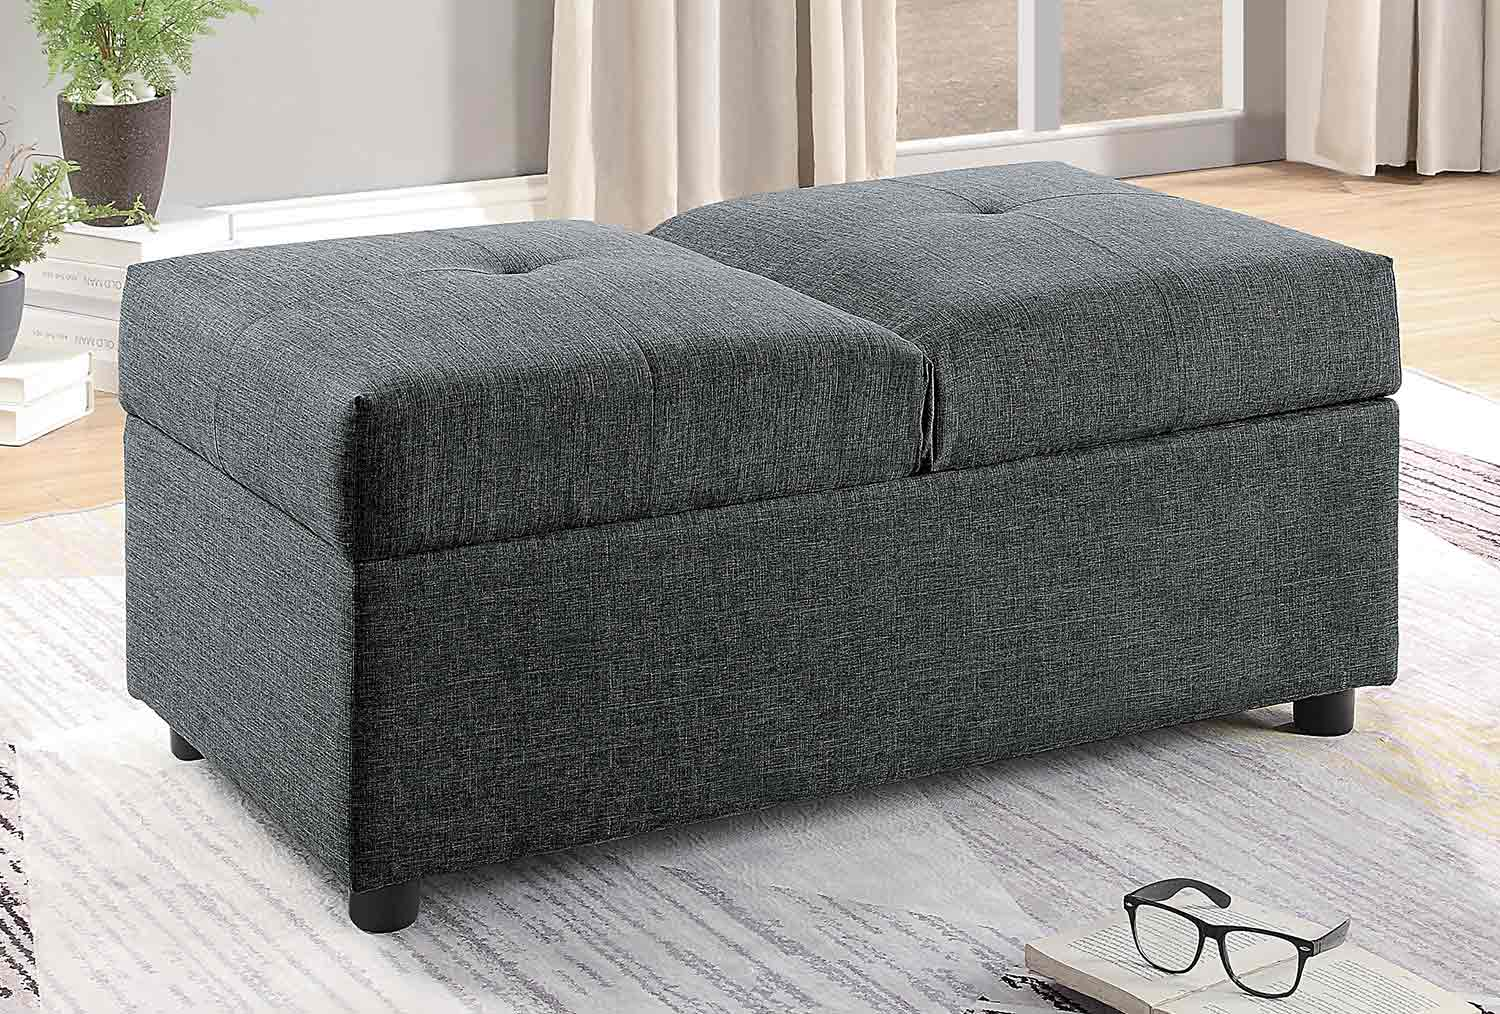 Homelegance Denby Storage Ottoman/Chair - Gray